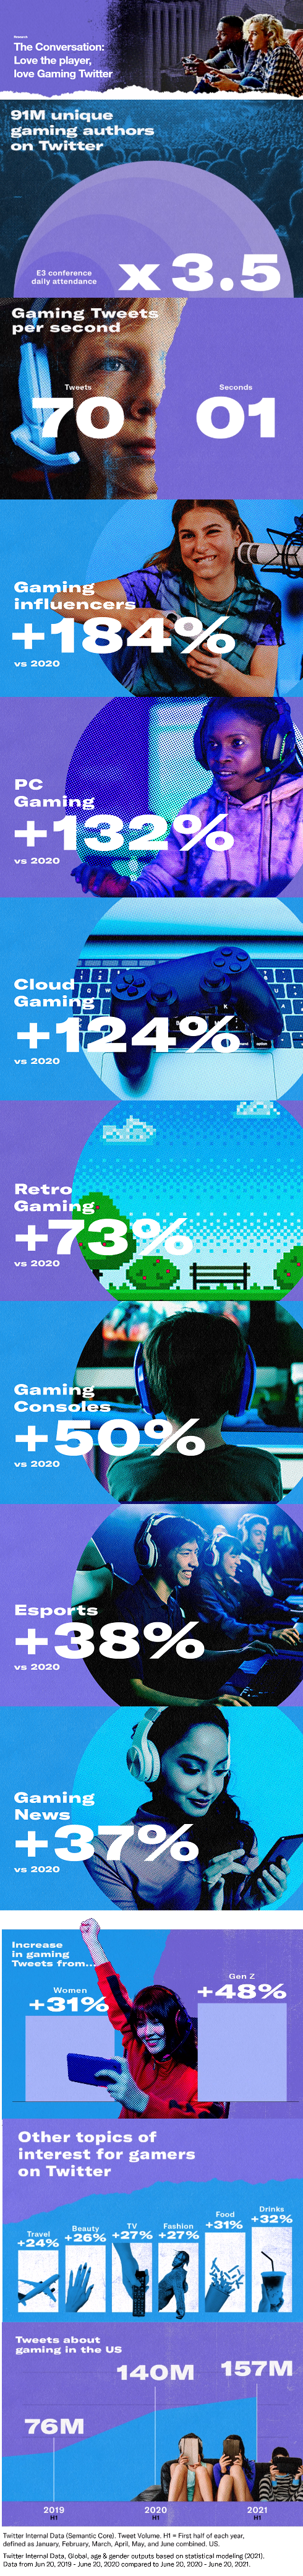 Twitter Gaming trends